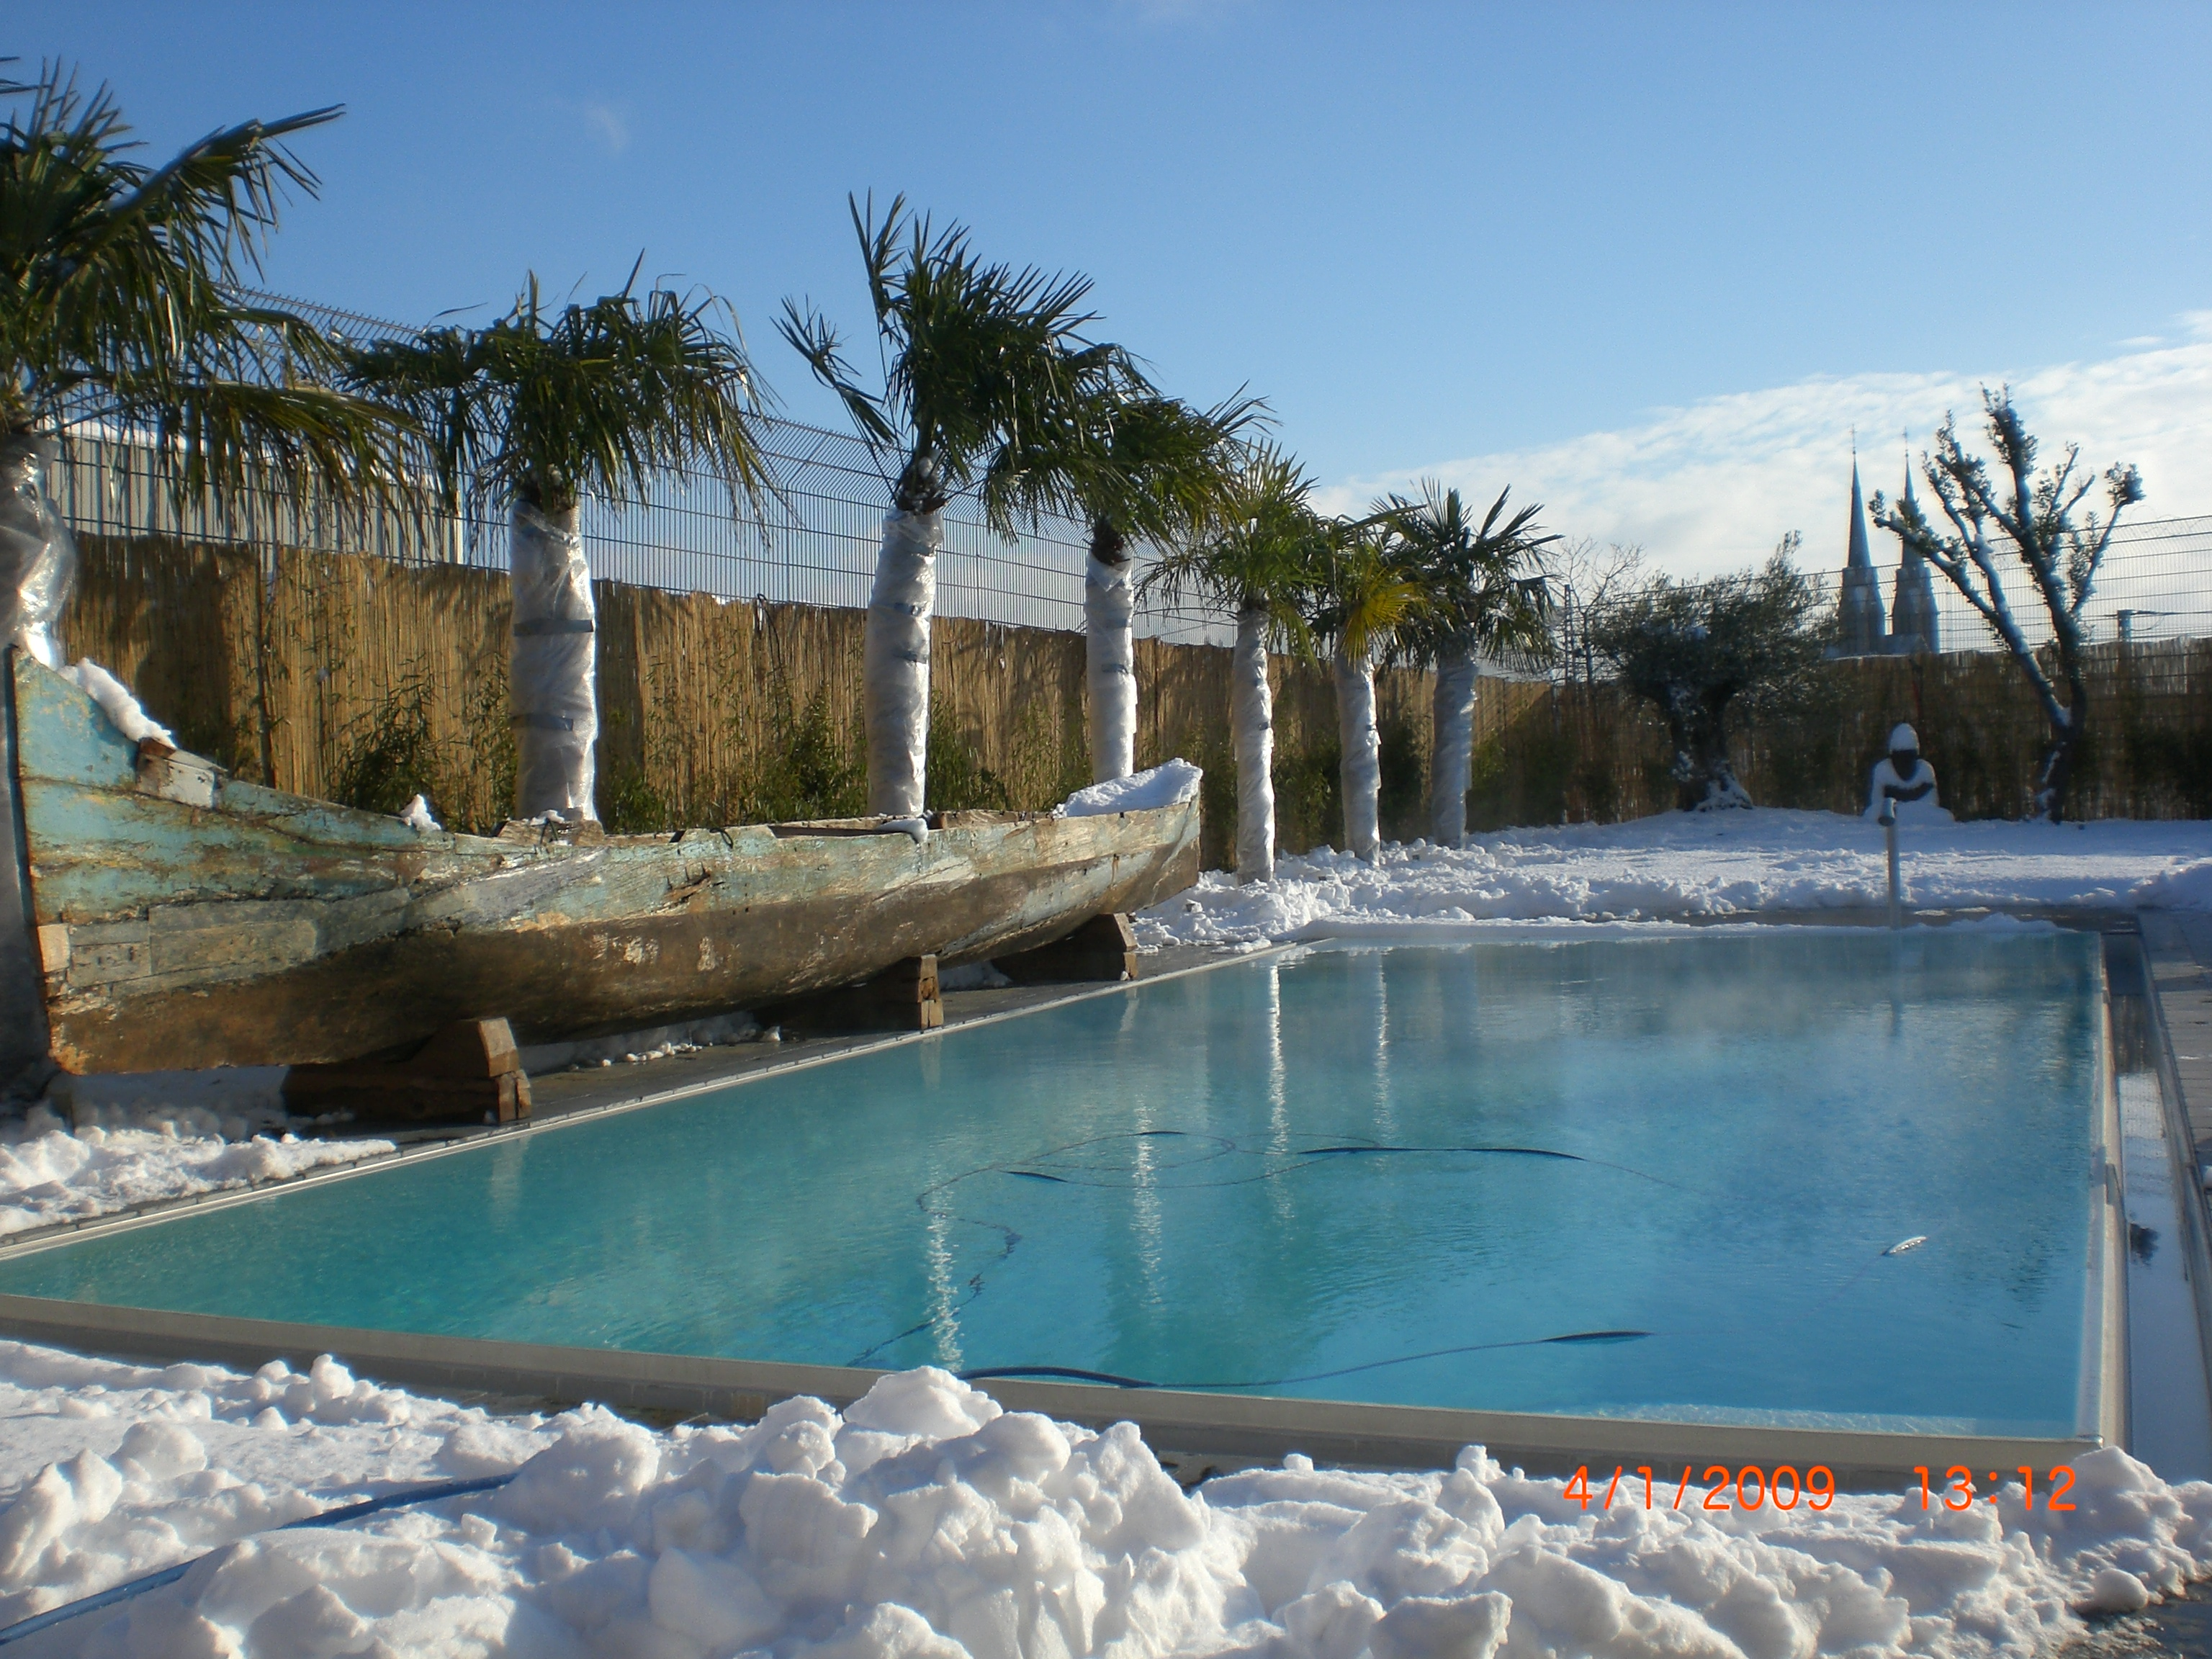 Gfk Pool Winterfest Machen Ist Ihr Pool Winterfest Swim And Sweat Poolbau Und